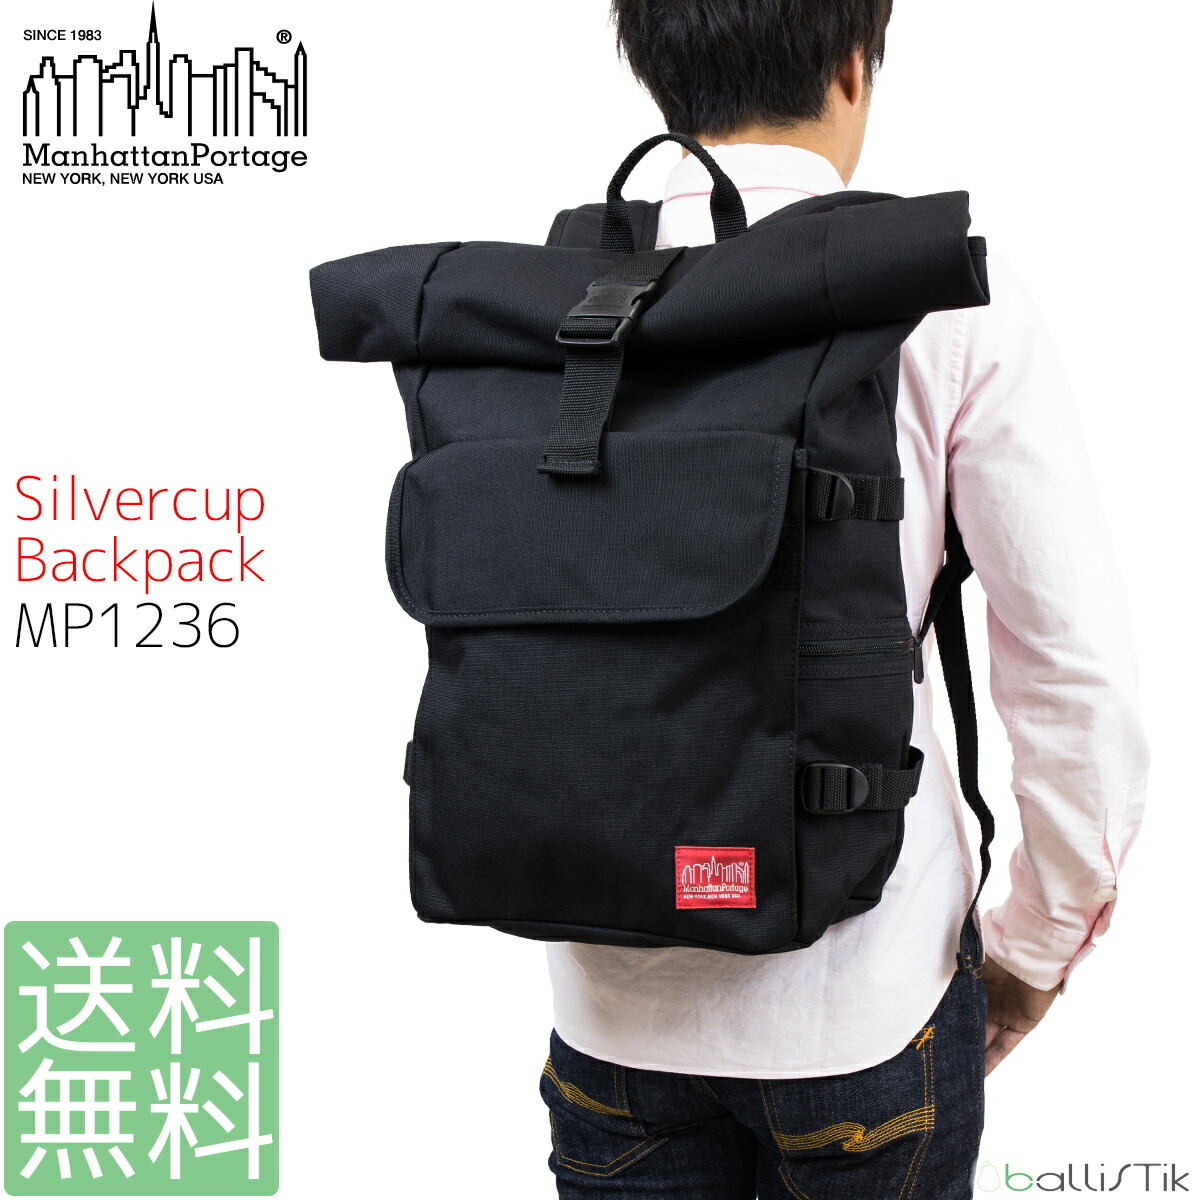 Manhattan Portage_リュック_バックパック_Silvercup Backpack_シルバーカップバックパック_MP1236